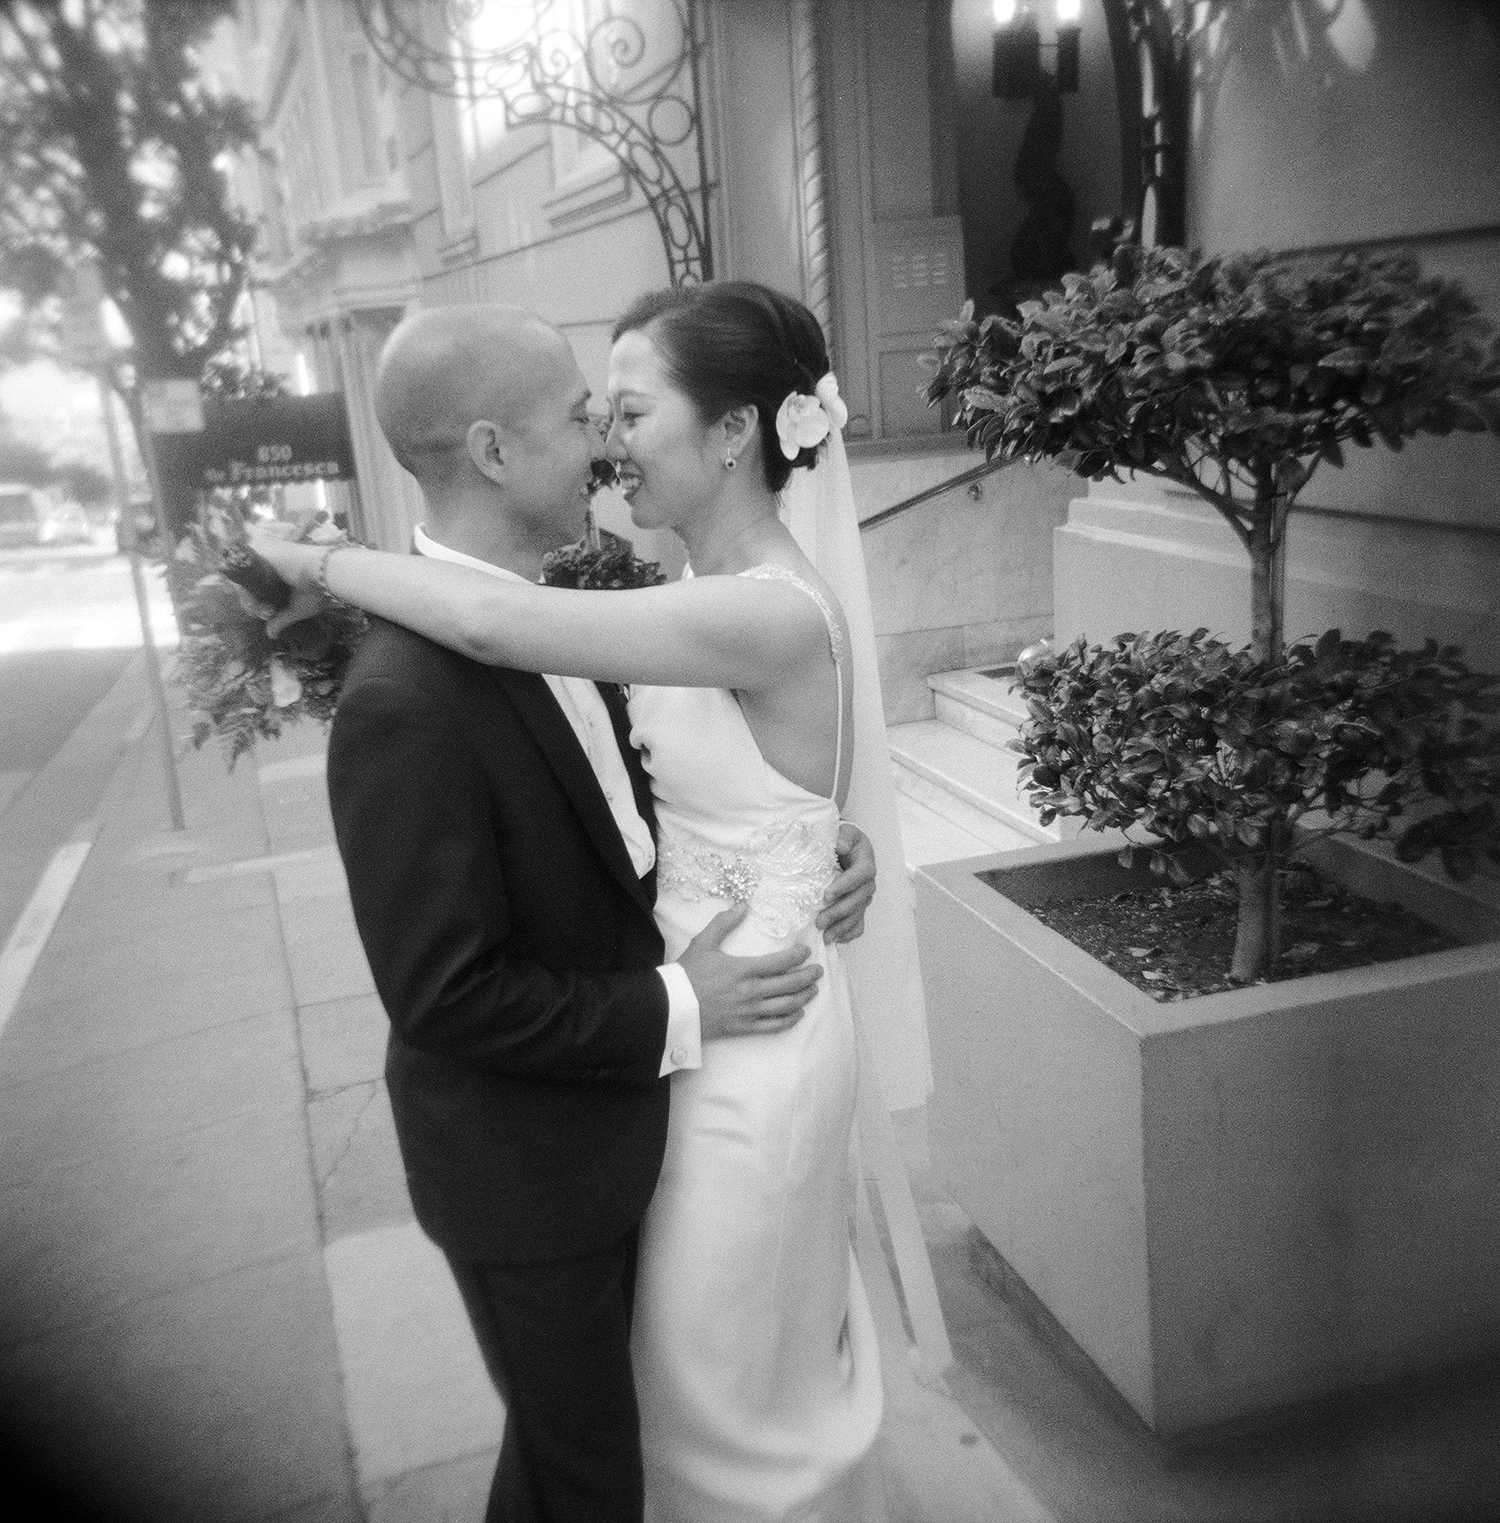 11-bride-groom-holga.jpg